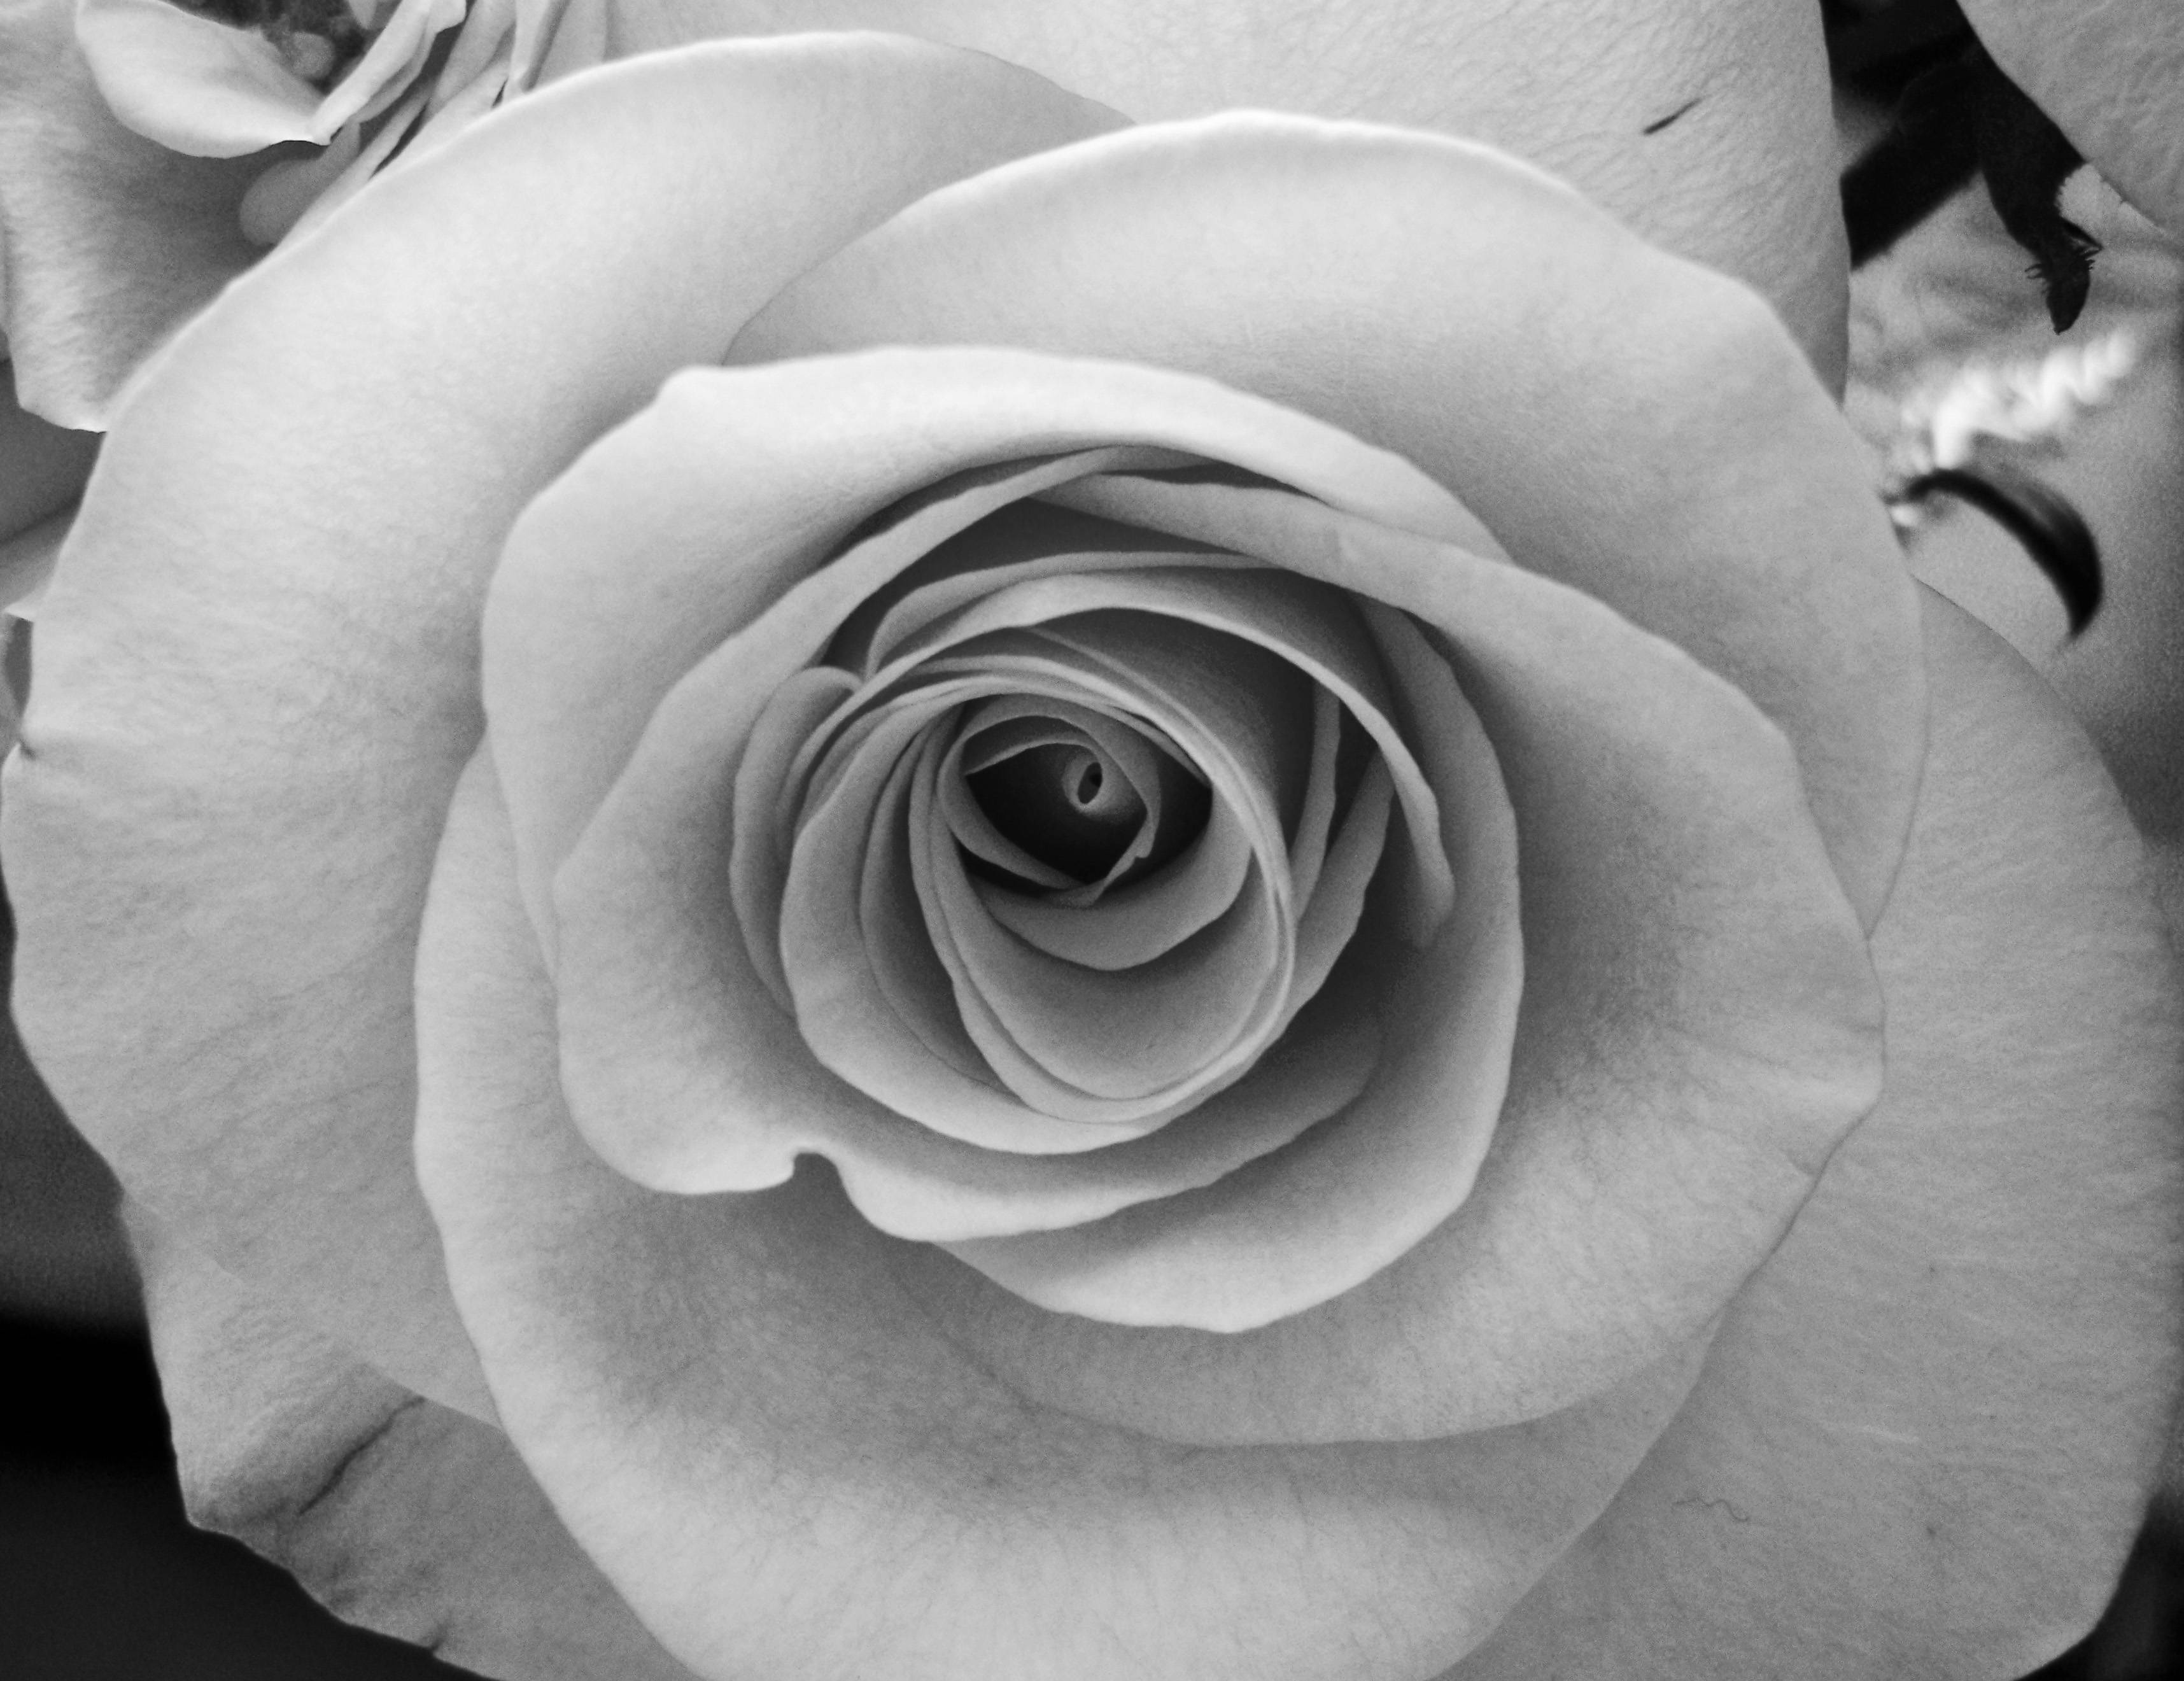 Black And White Roses Wallpapers - Wallpaper Cave